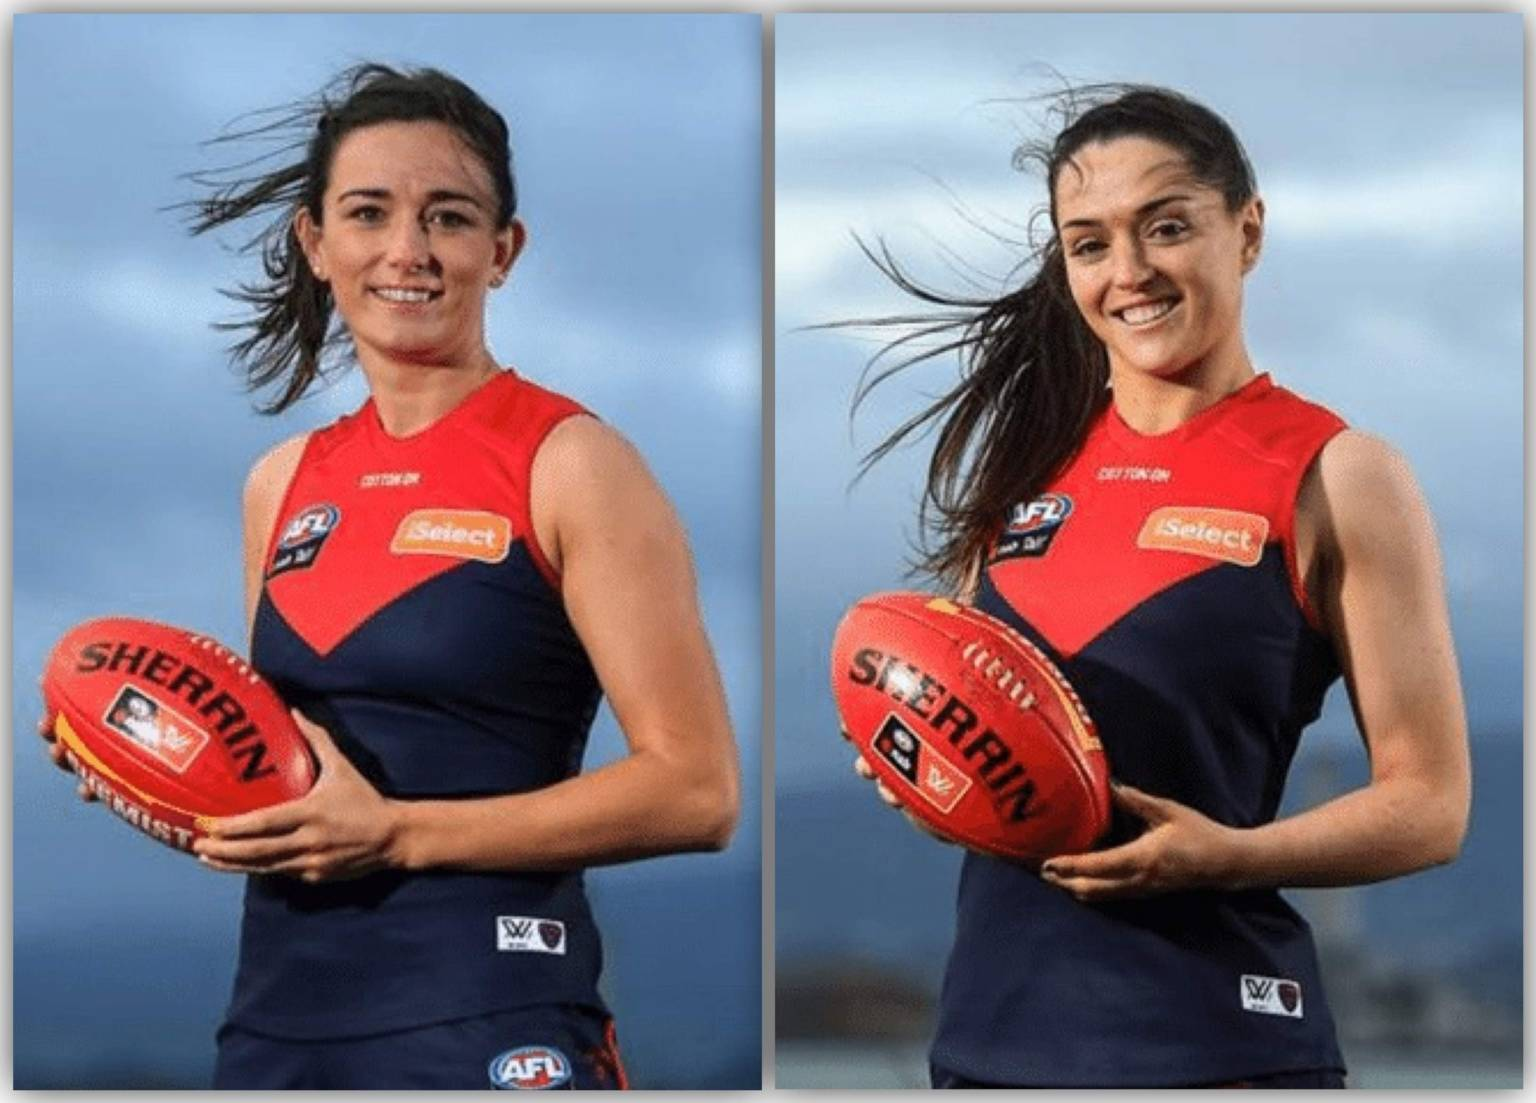 Dublin Duo Niamh McEvoy and Sinead Goldrick have had their AFLW season cut short due to Covid-19 so they can return home.